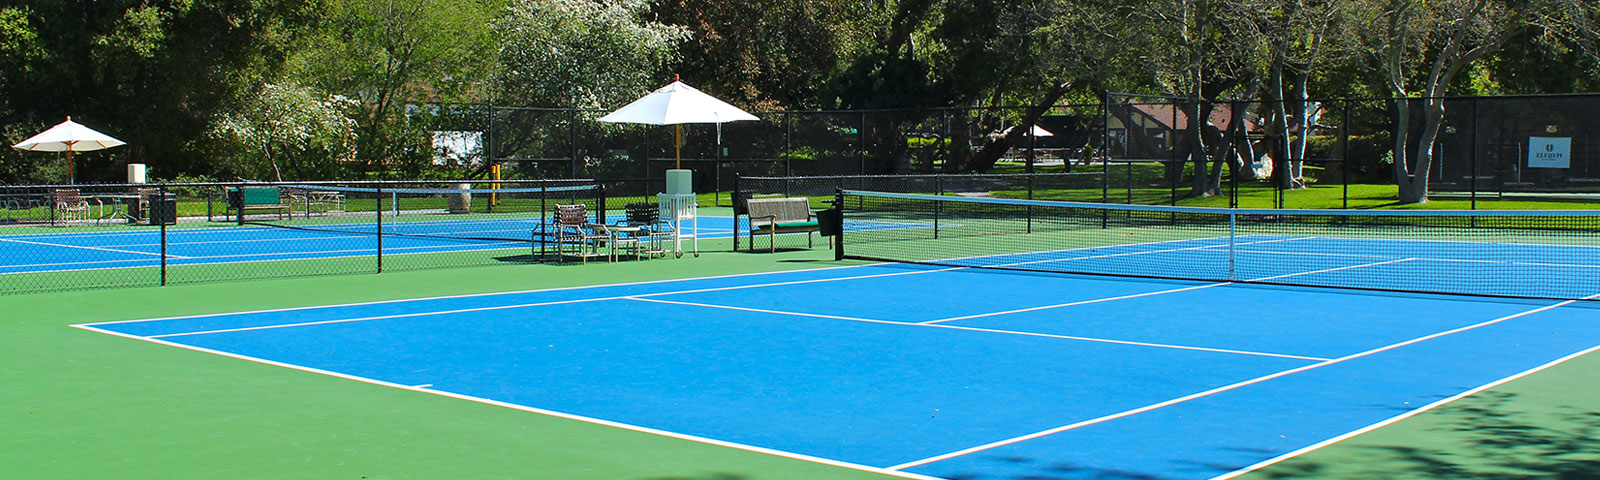 Tennis Courts at Alisal Guest Ranch & Resort in Solvang, CA